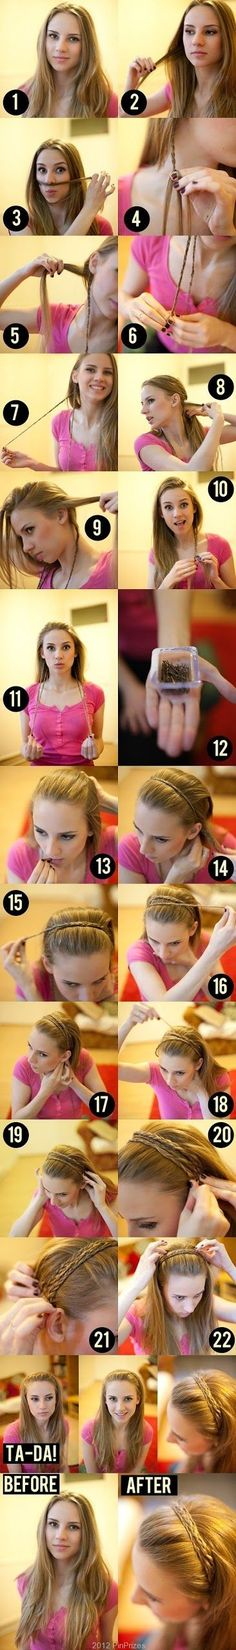 DIY Braid Headband Hairstyle DIY Fashion Tips / DIY Fashion Projects